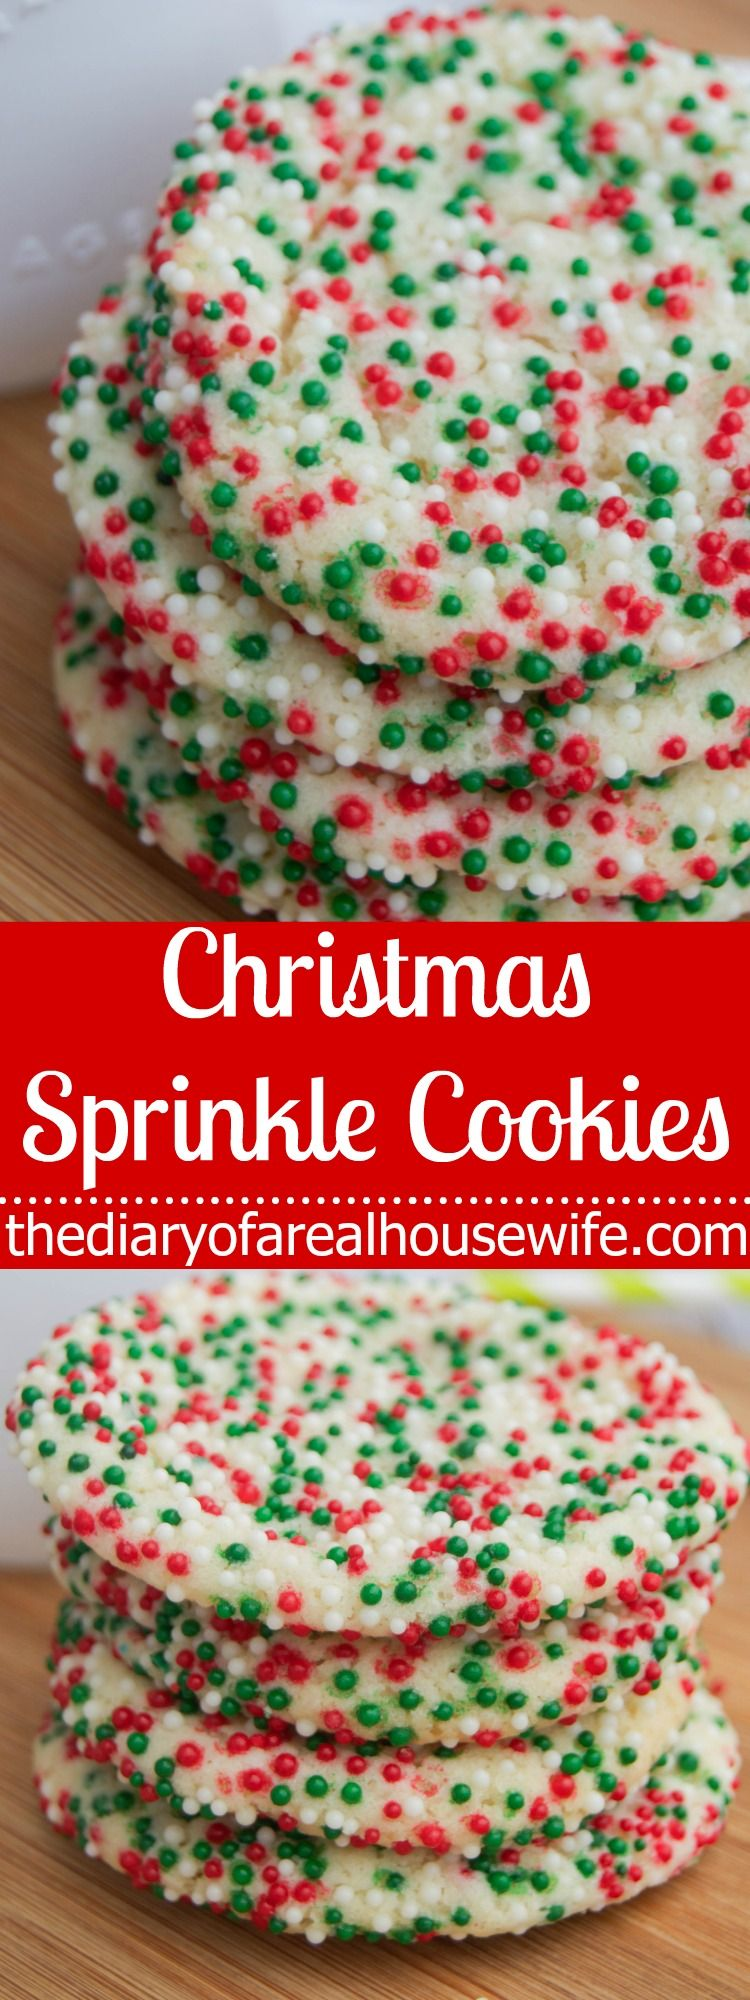 Christmas Sprinkle Cookies This Is Such A Fun Cookie And It Was So